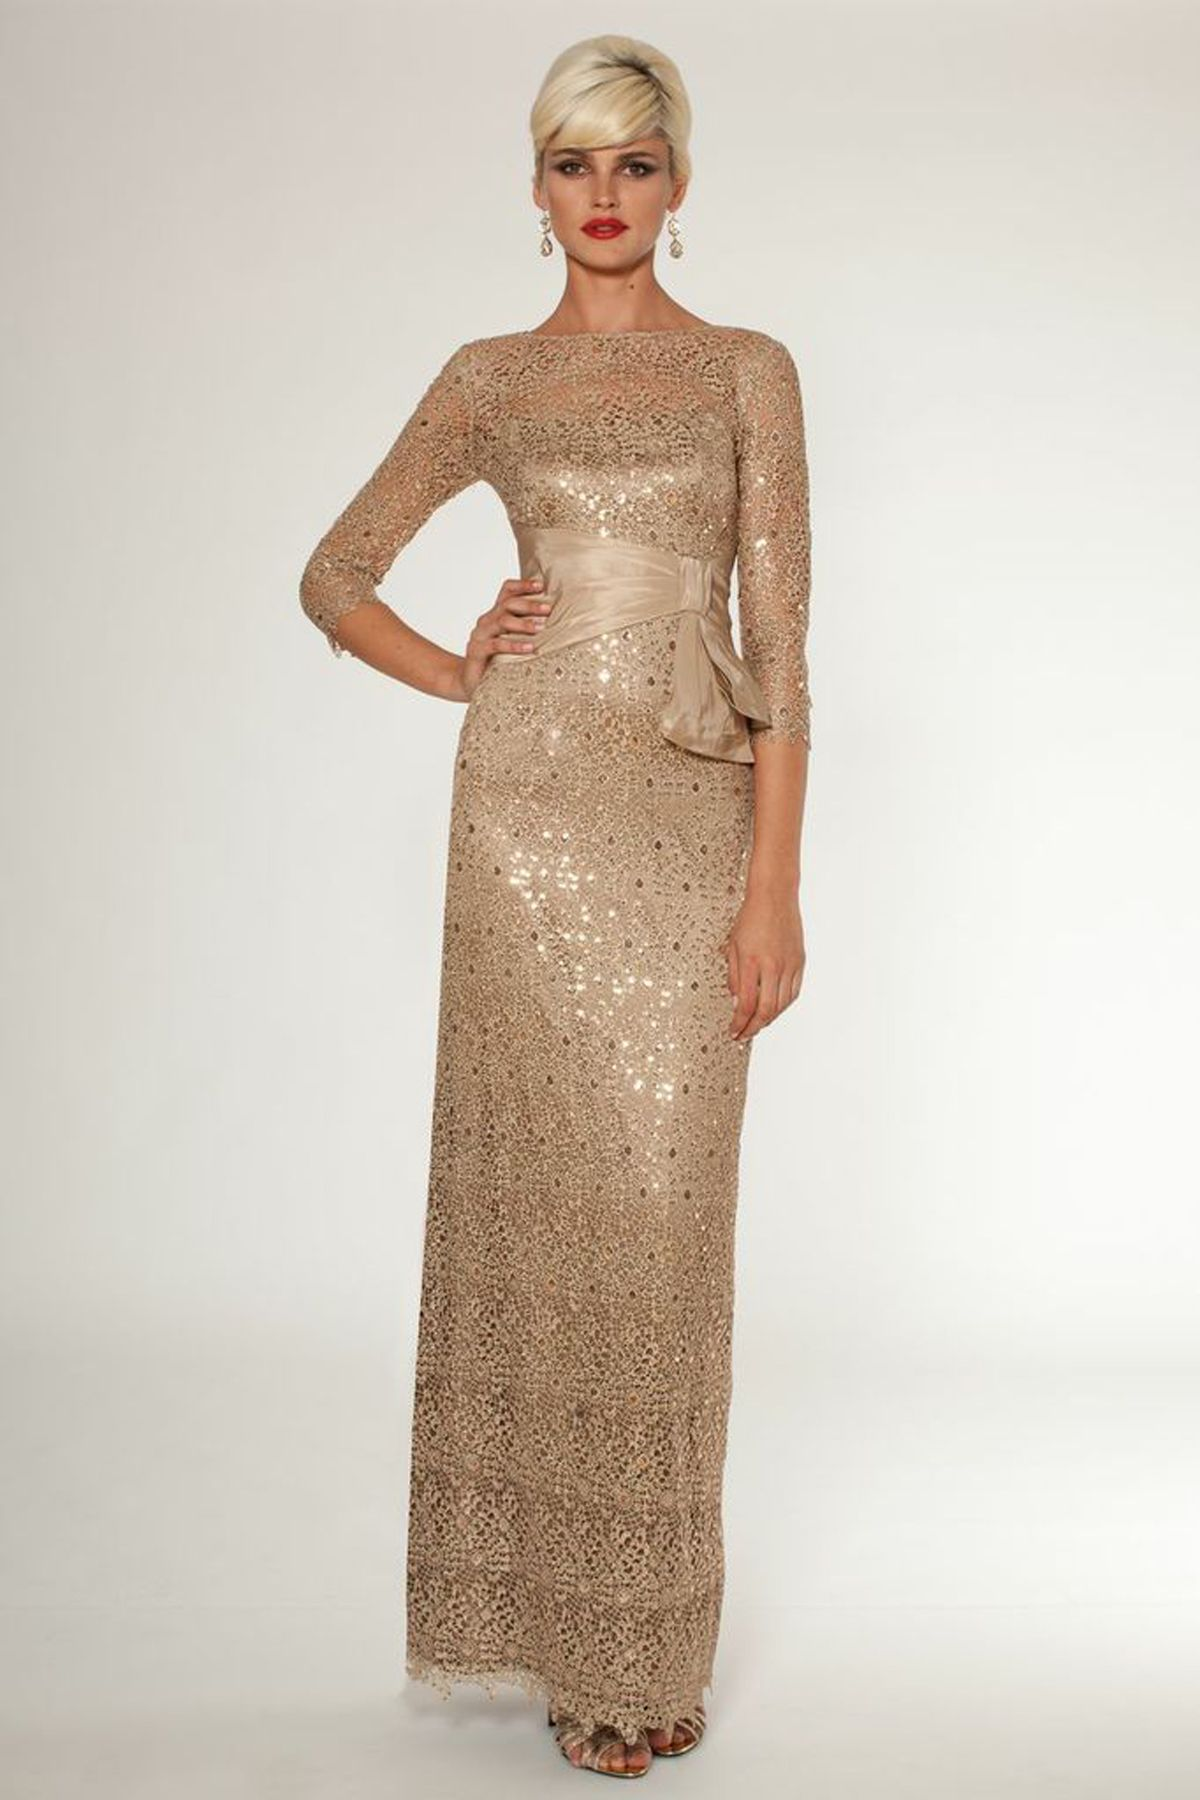 Gold dress for 50th birthday party places | Color dress ...